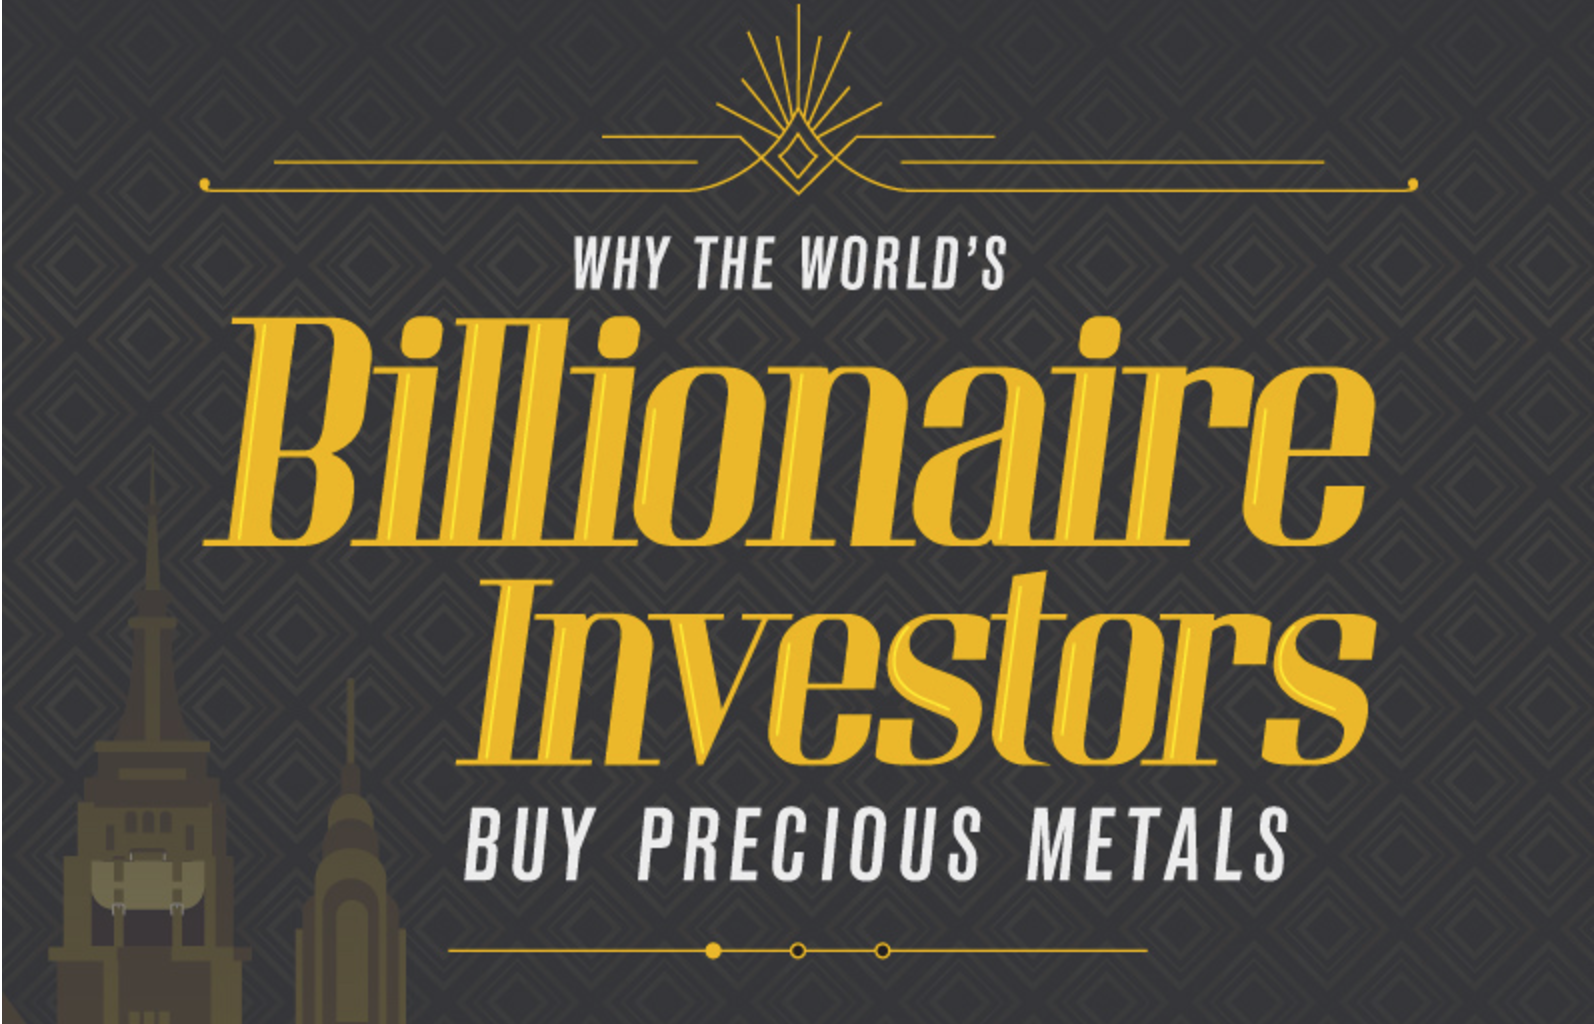 Why the World's Billionaire Investors Buy Precious Metals